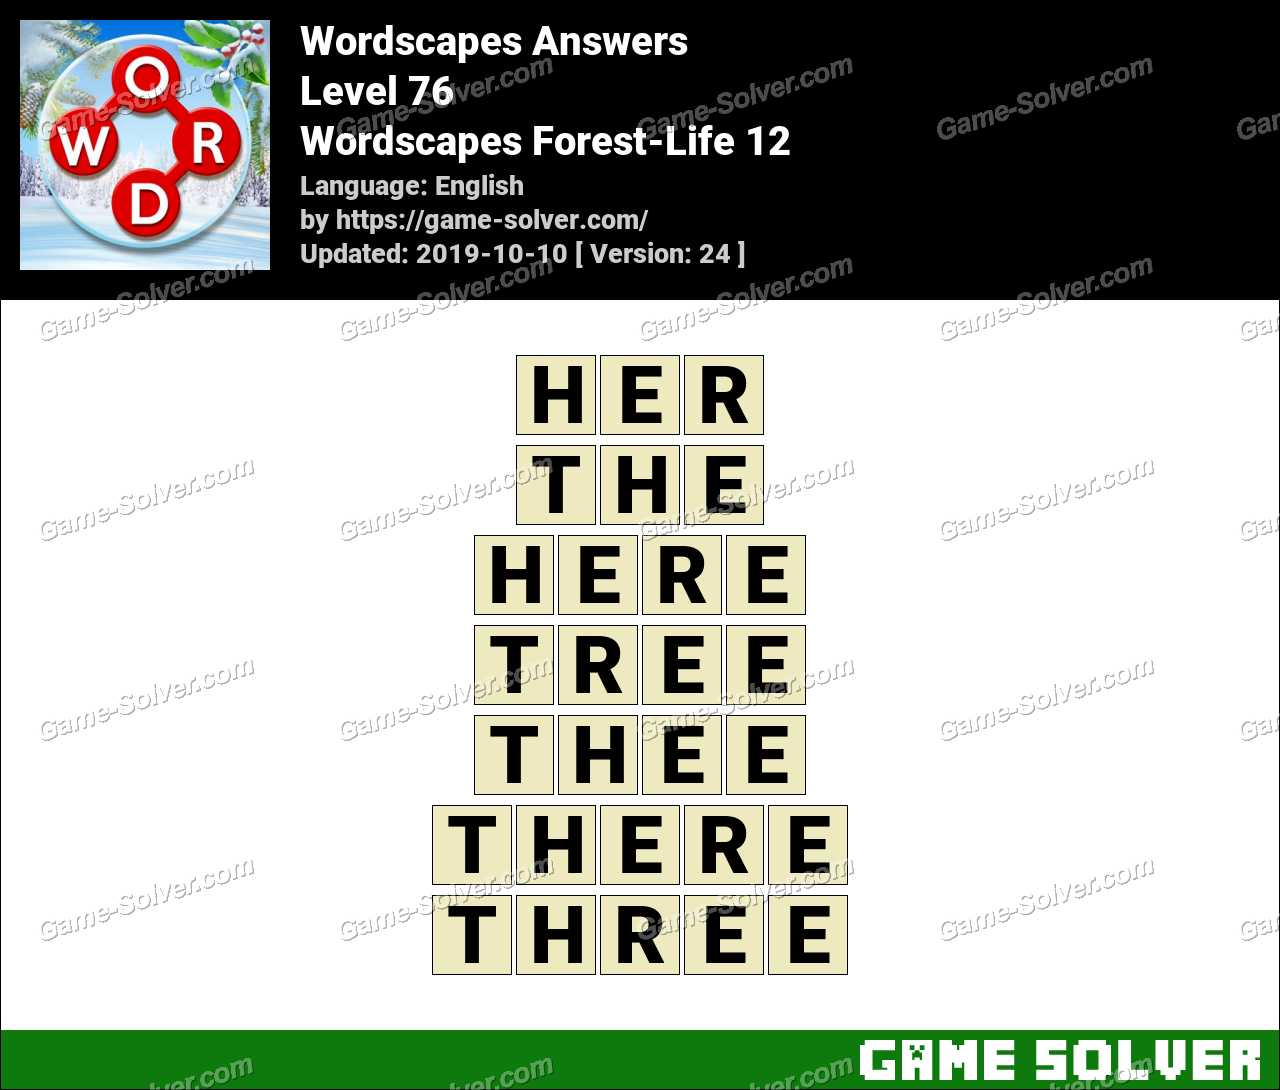 Wordscapes Forest-Life 12 Answers